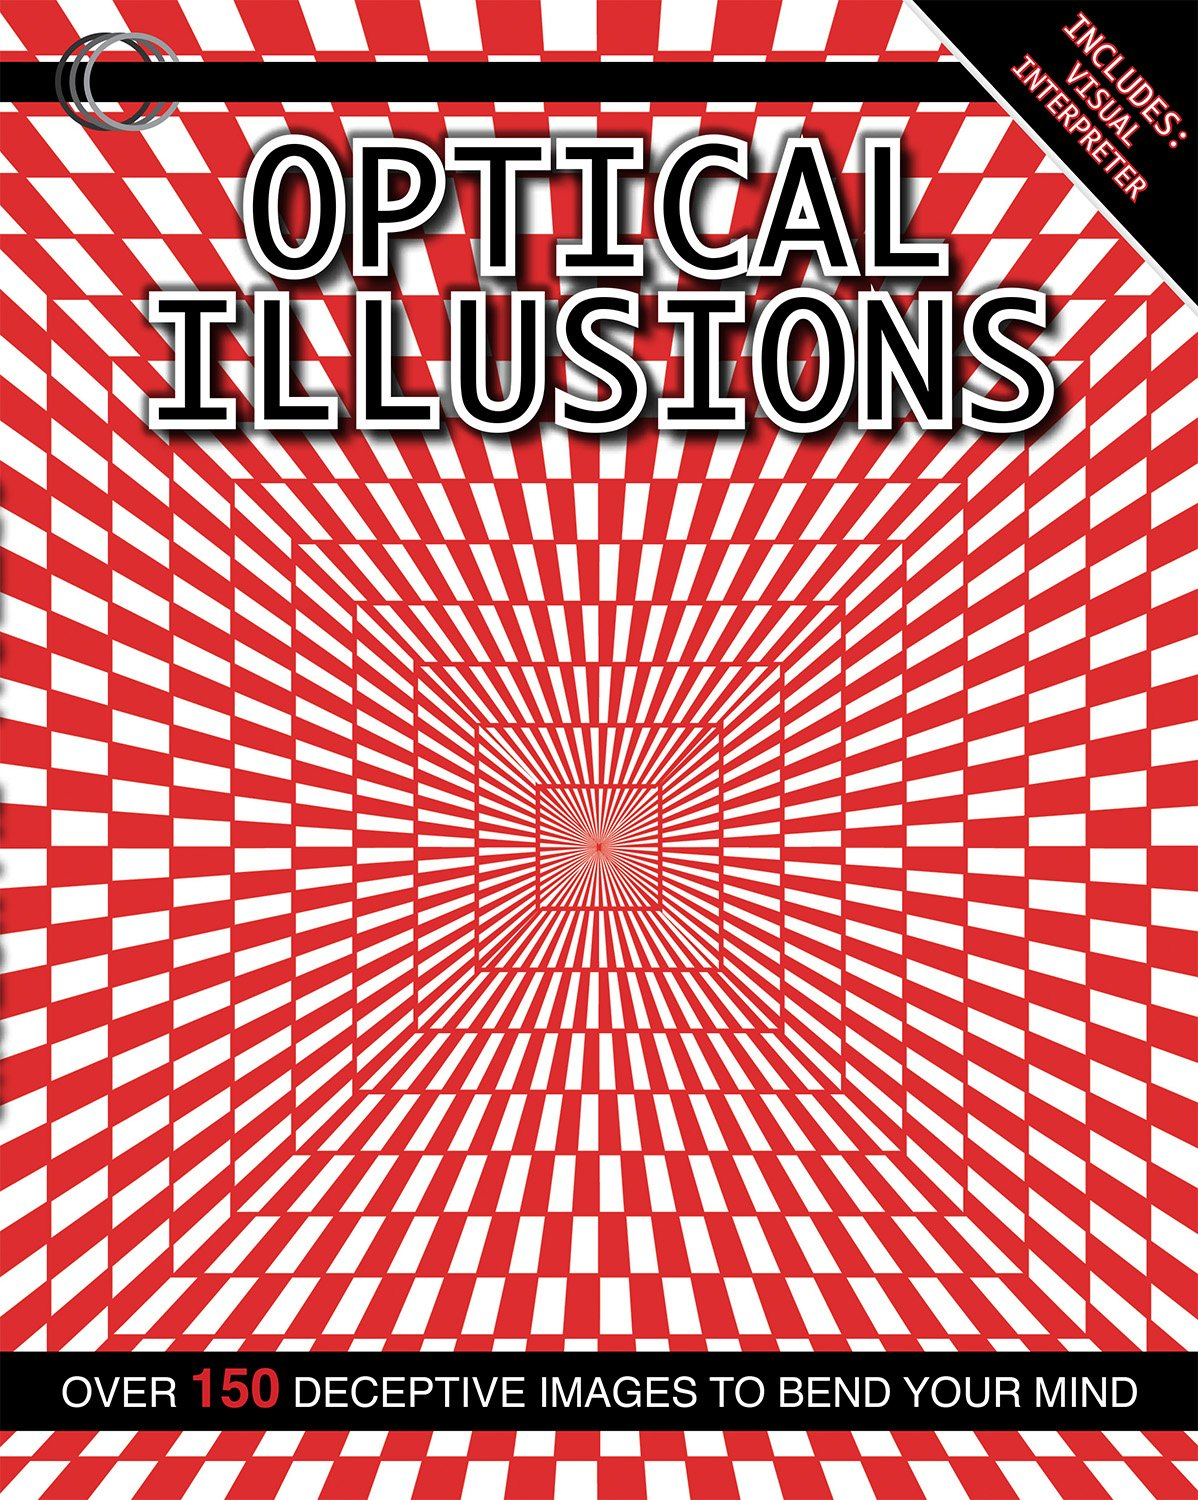 Optical Illusions Parragon Books product image